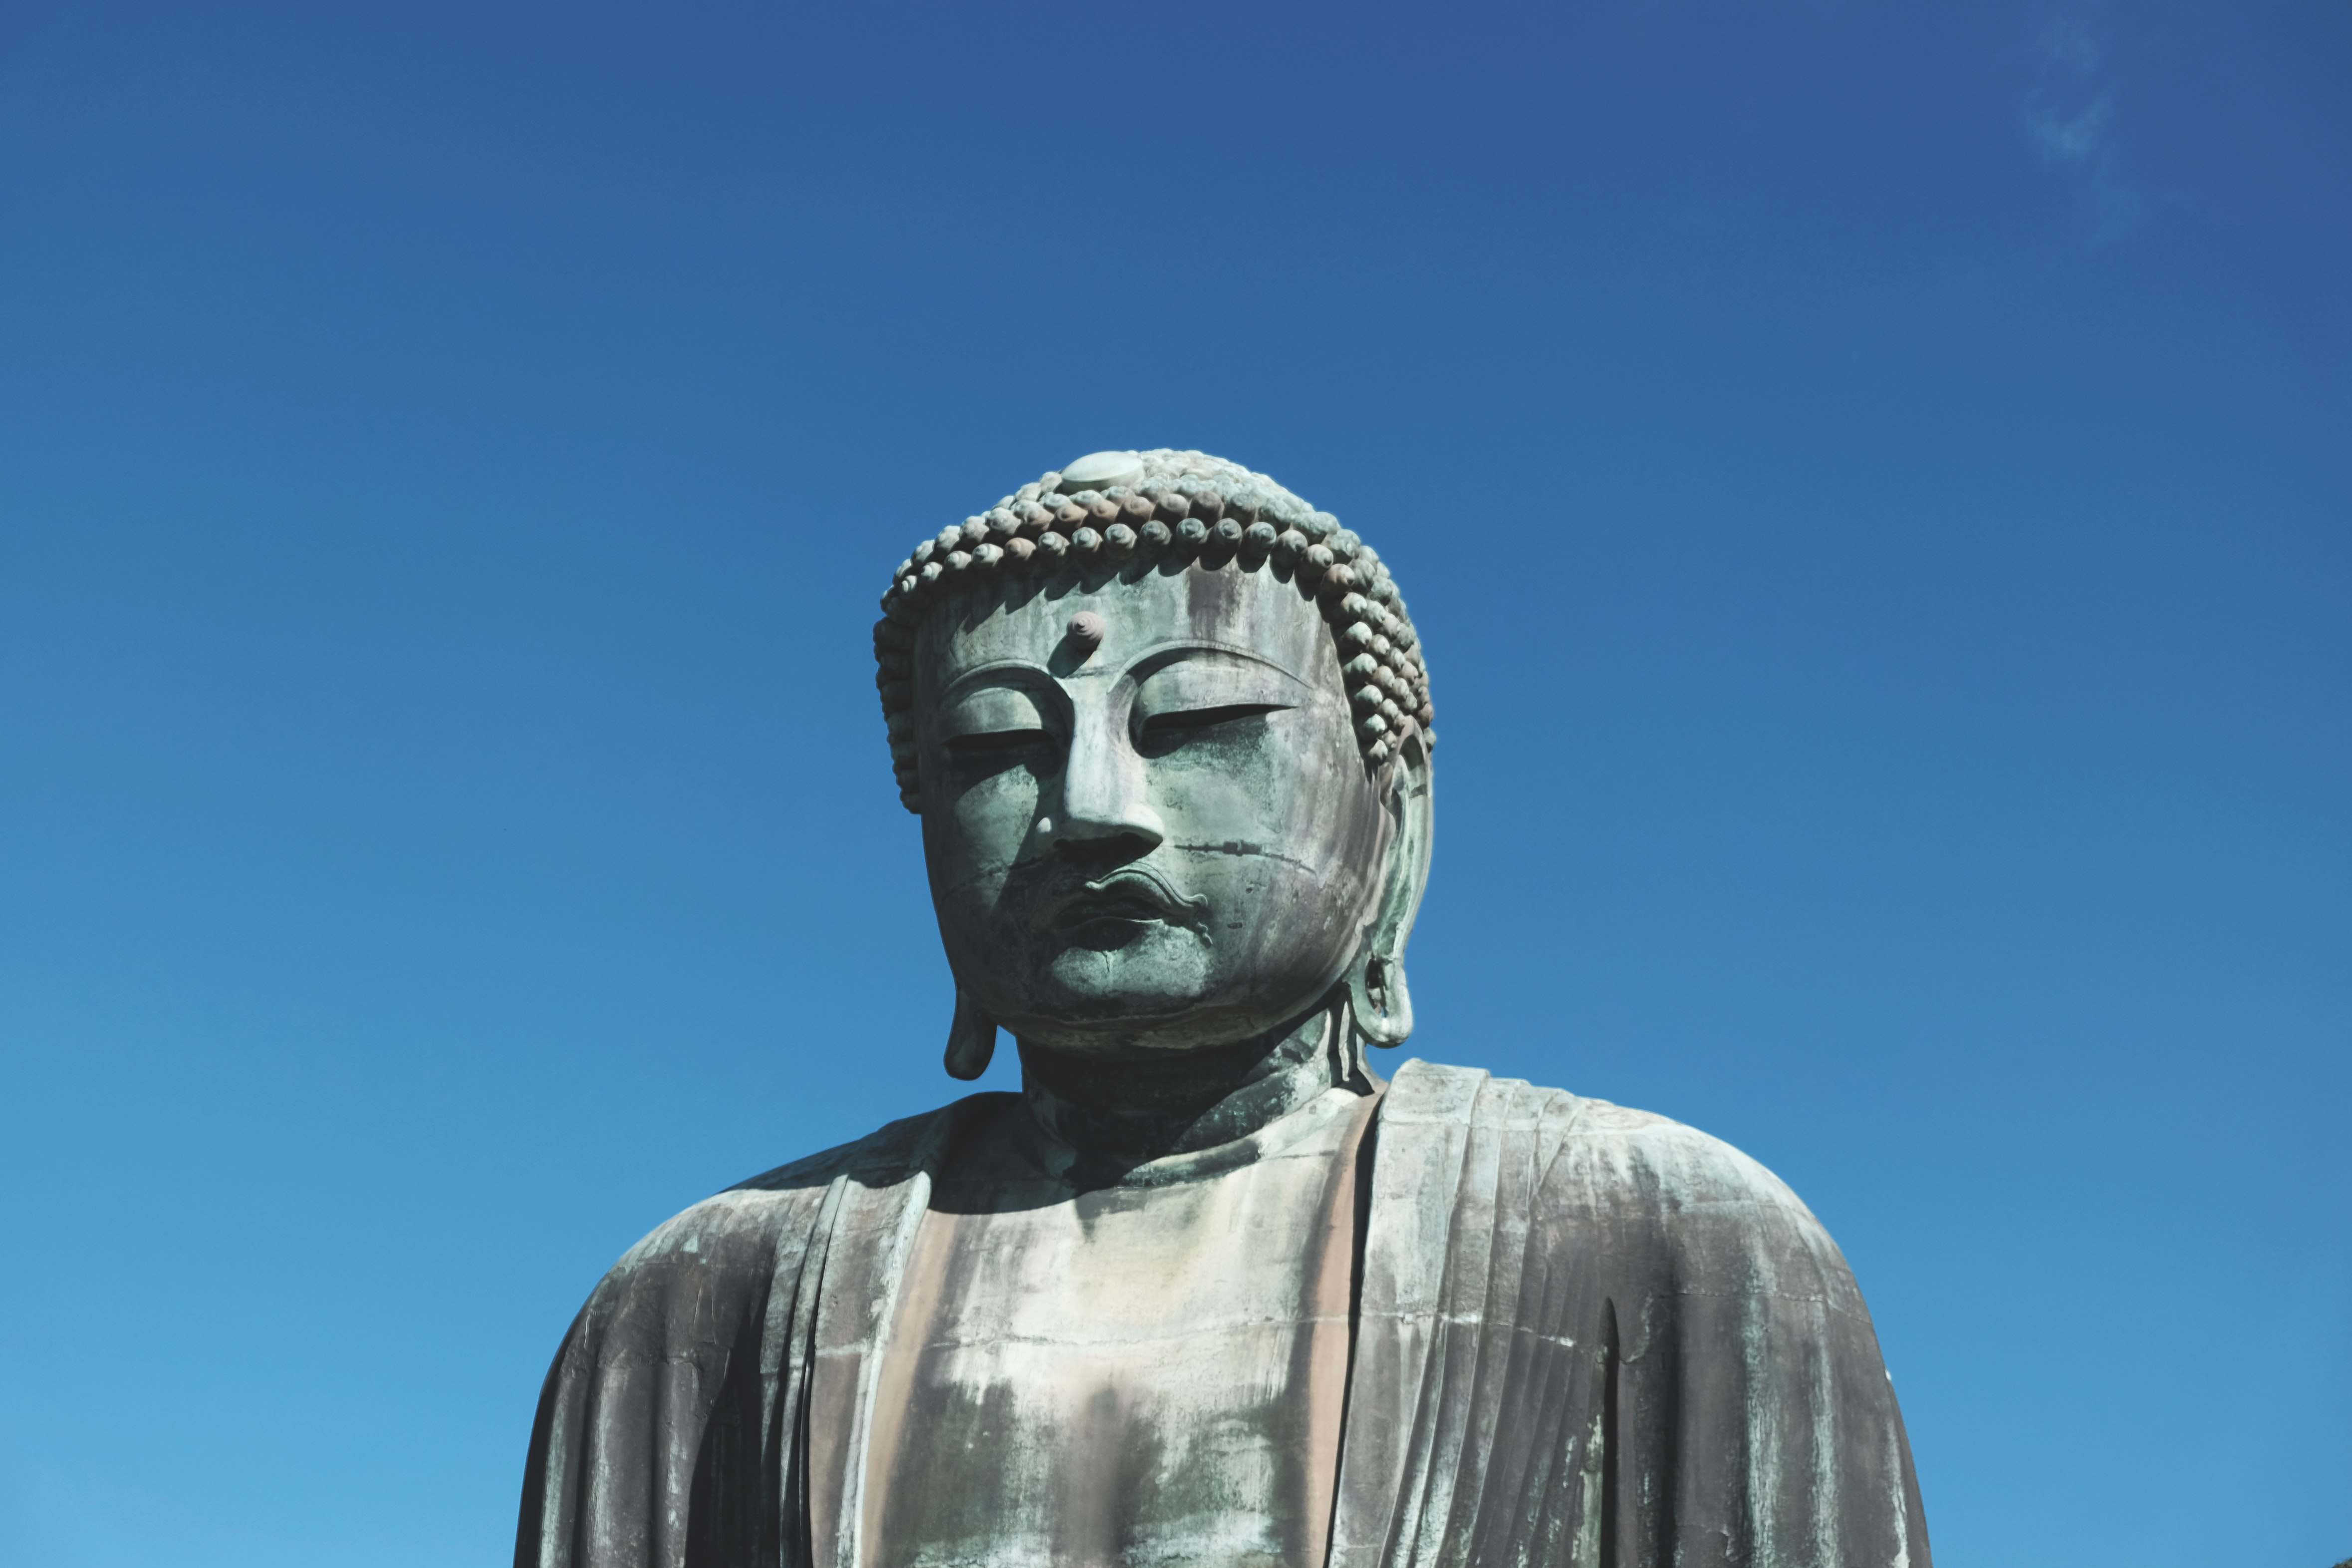 Gautama Buddha statue under clear blue sky